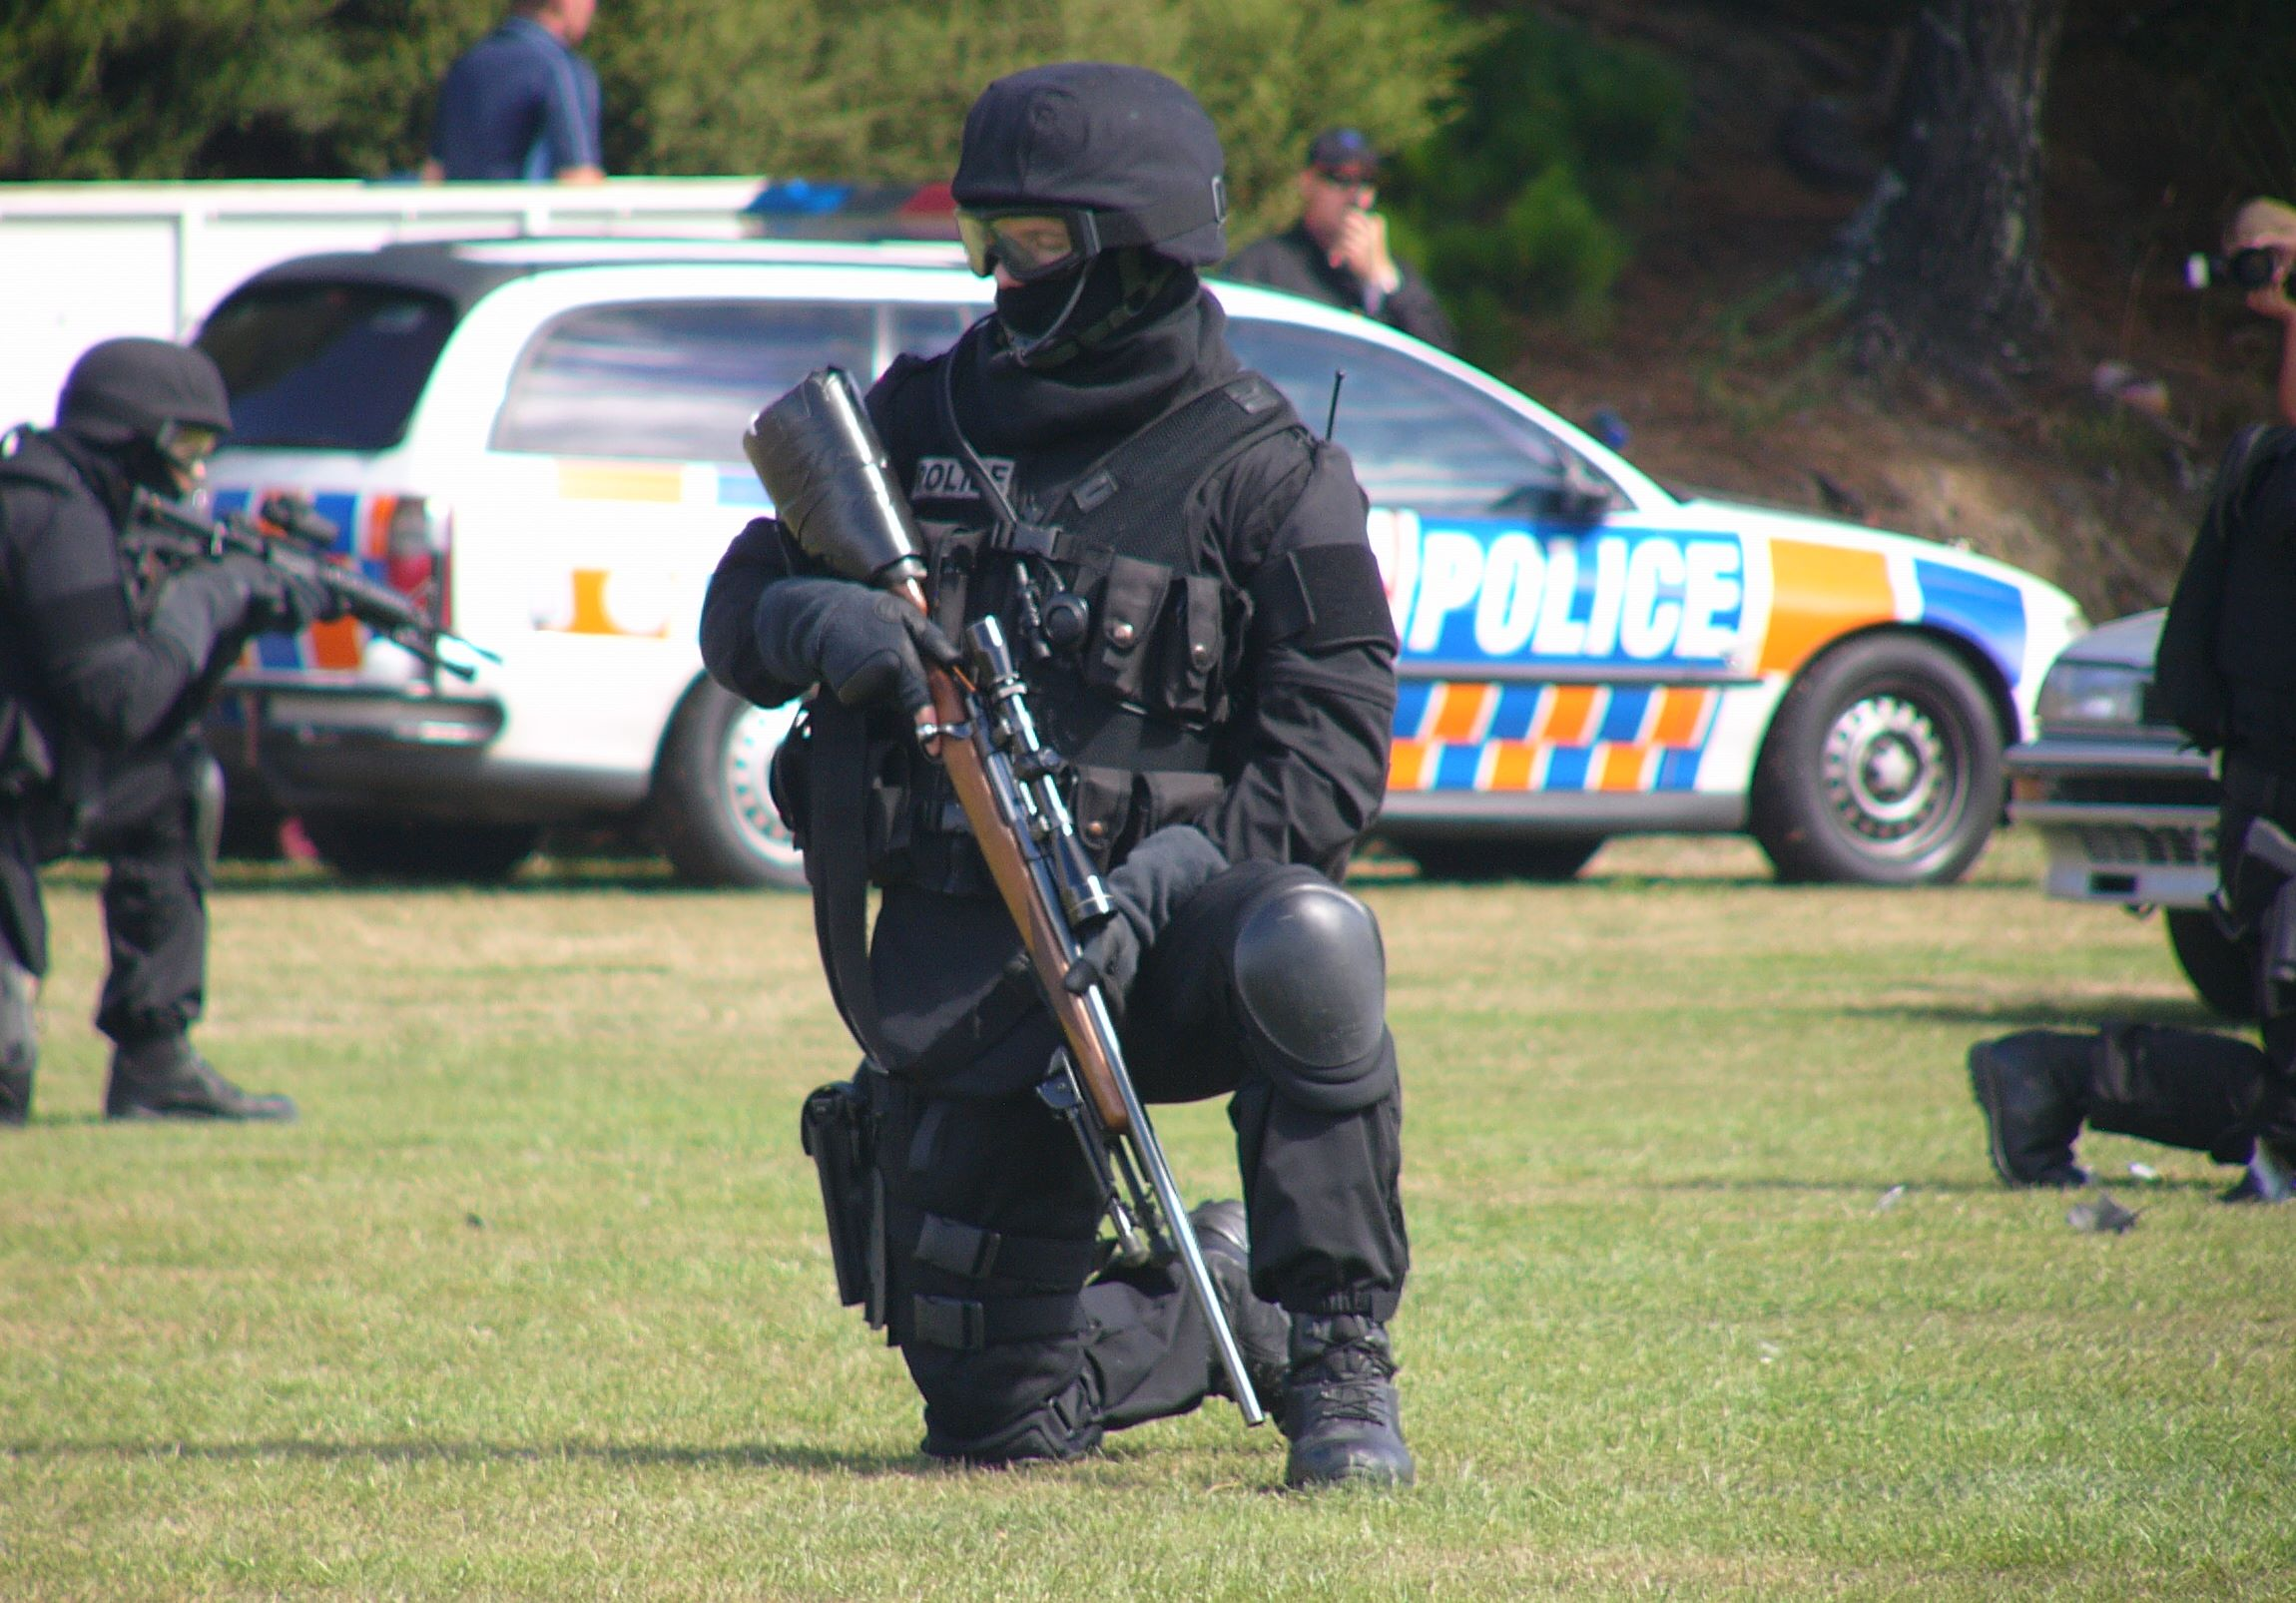 Nz Shooting Video Wallpaper: File:Wellington Armed Offenders Squad (AOS)